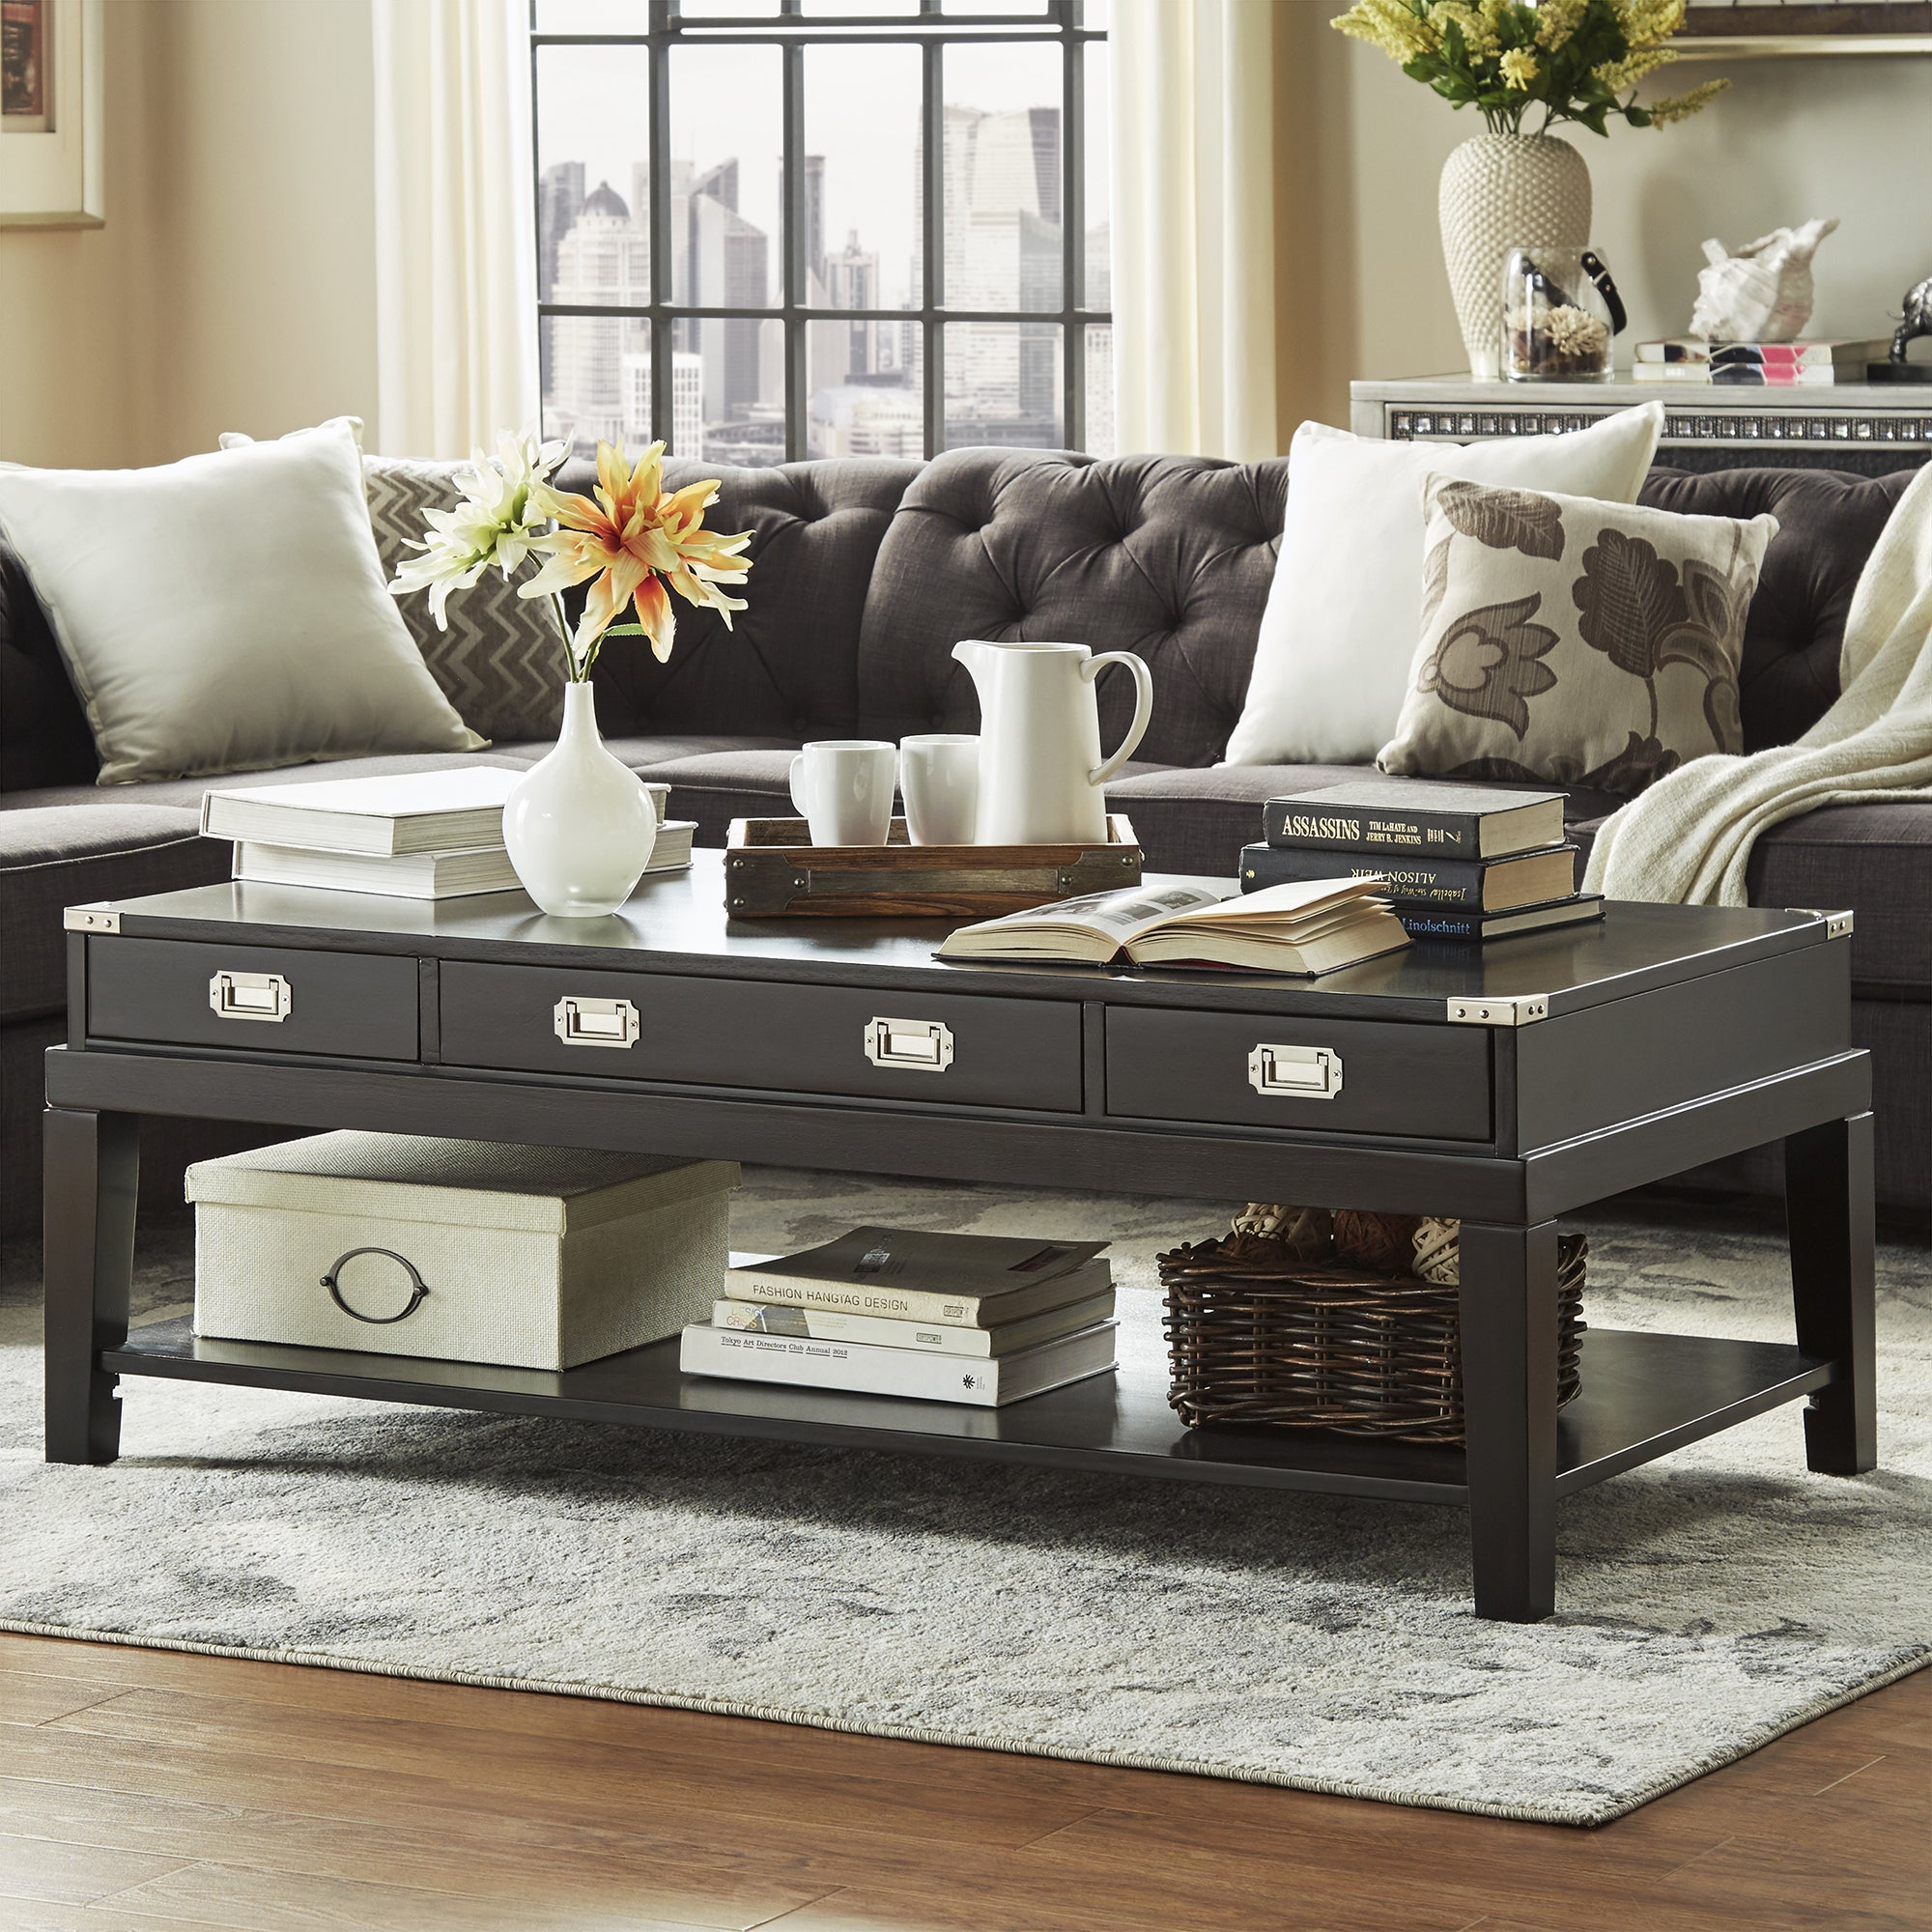 Lonny Wood Storage Accent Campaign Coffee Table by iNSPIRE Q